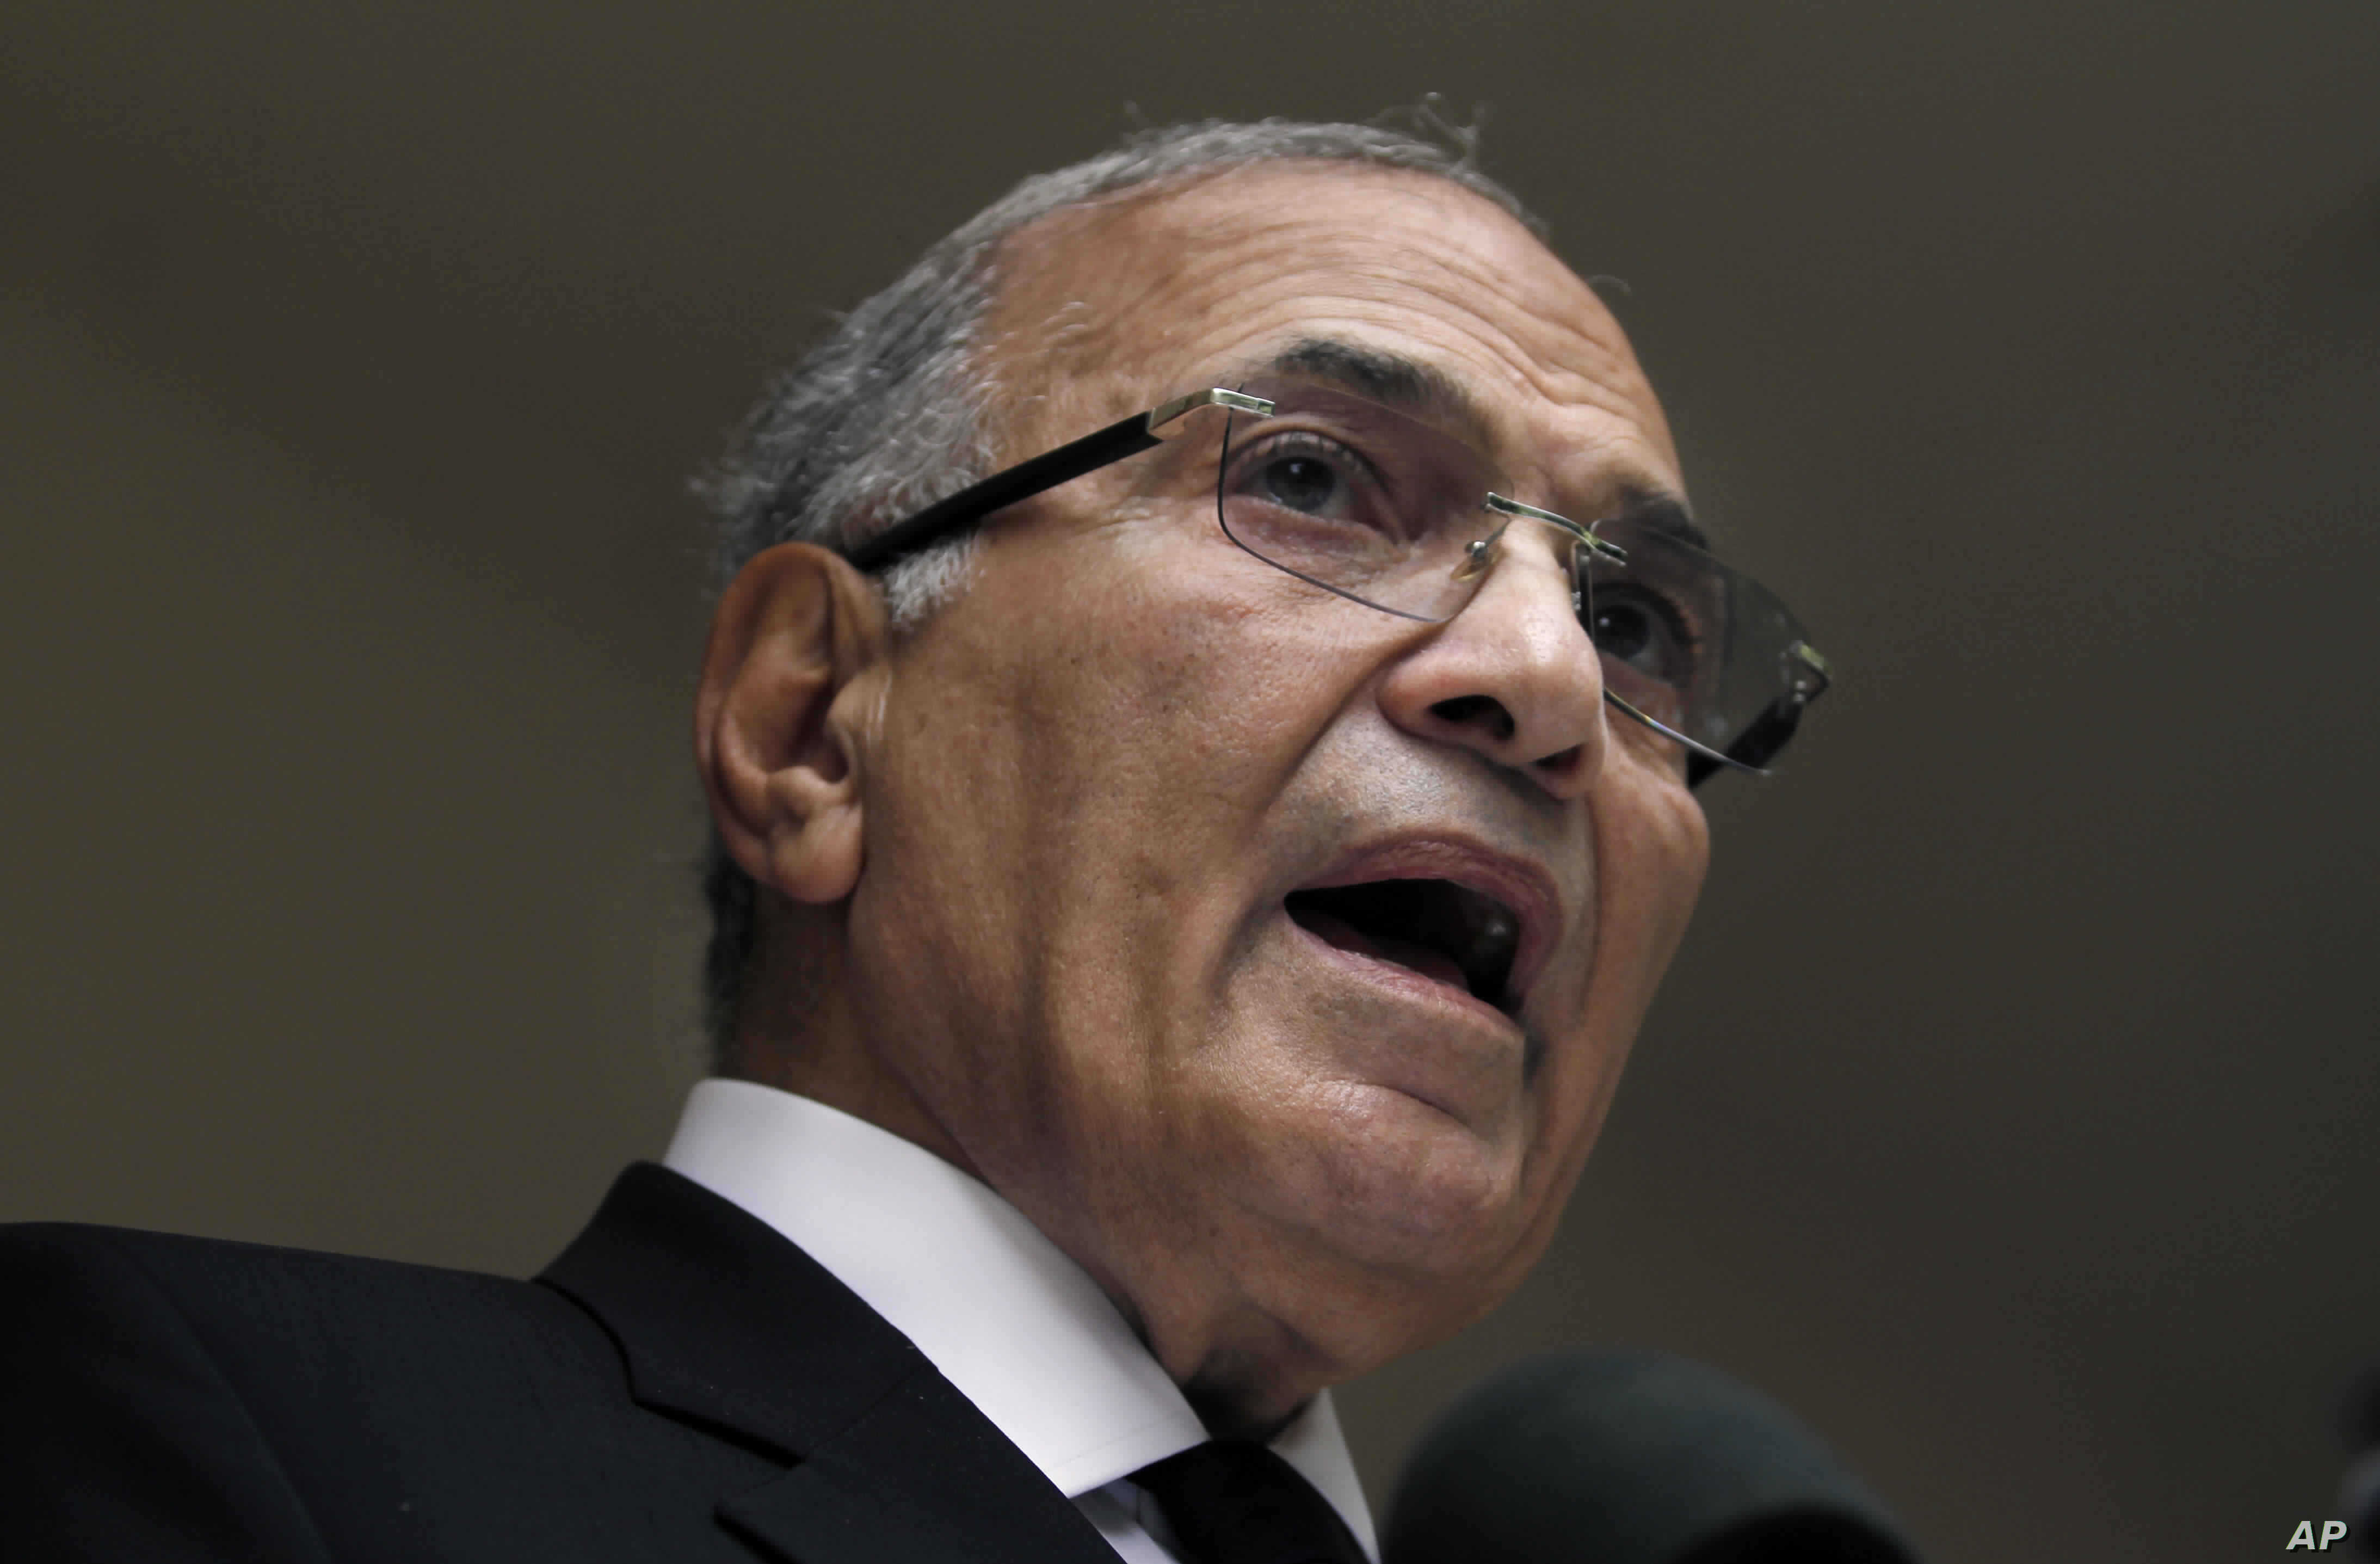 FILE - In this May 26, 2012 file photo, then Egyptian presidential candidate Ahmed Shafiq speaks during a press conference at his office in Cairo, Egypt.